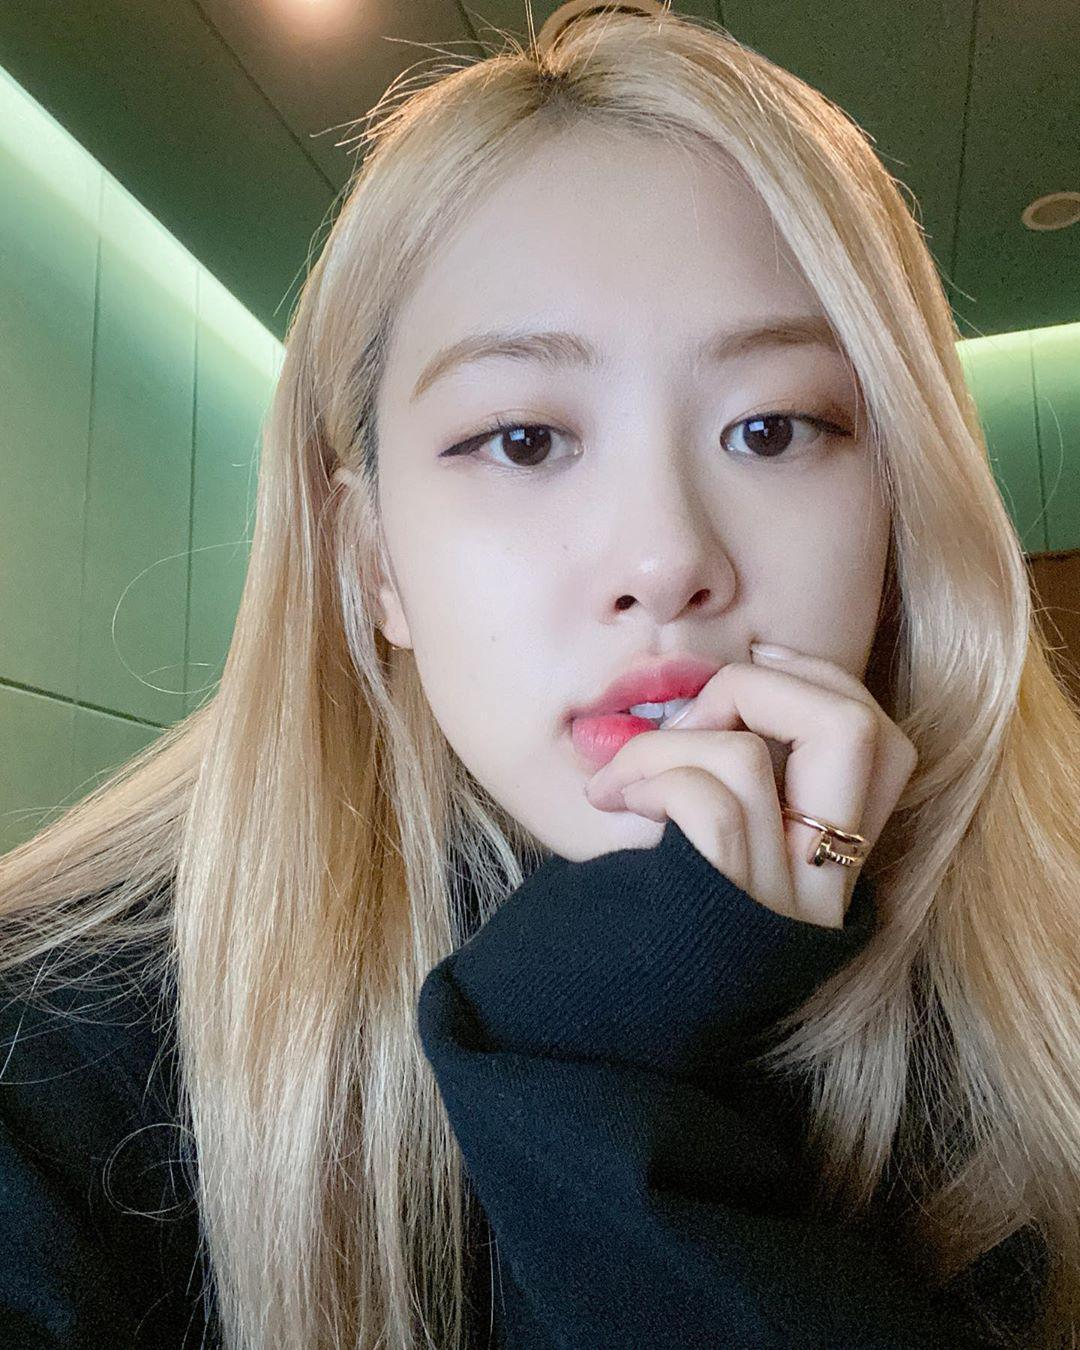 Blackpink Want Glowing Skin Like Rose These Are Her Beauty Secrets That You Can Follow